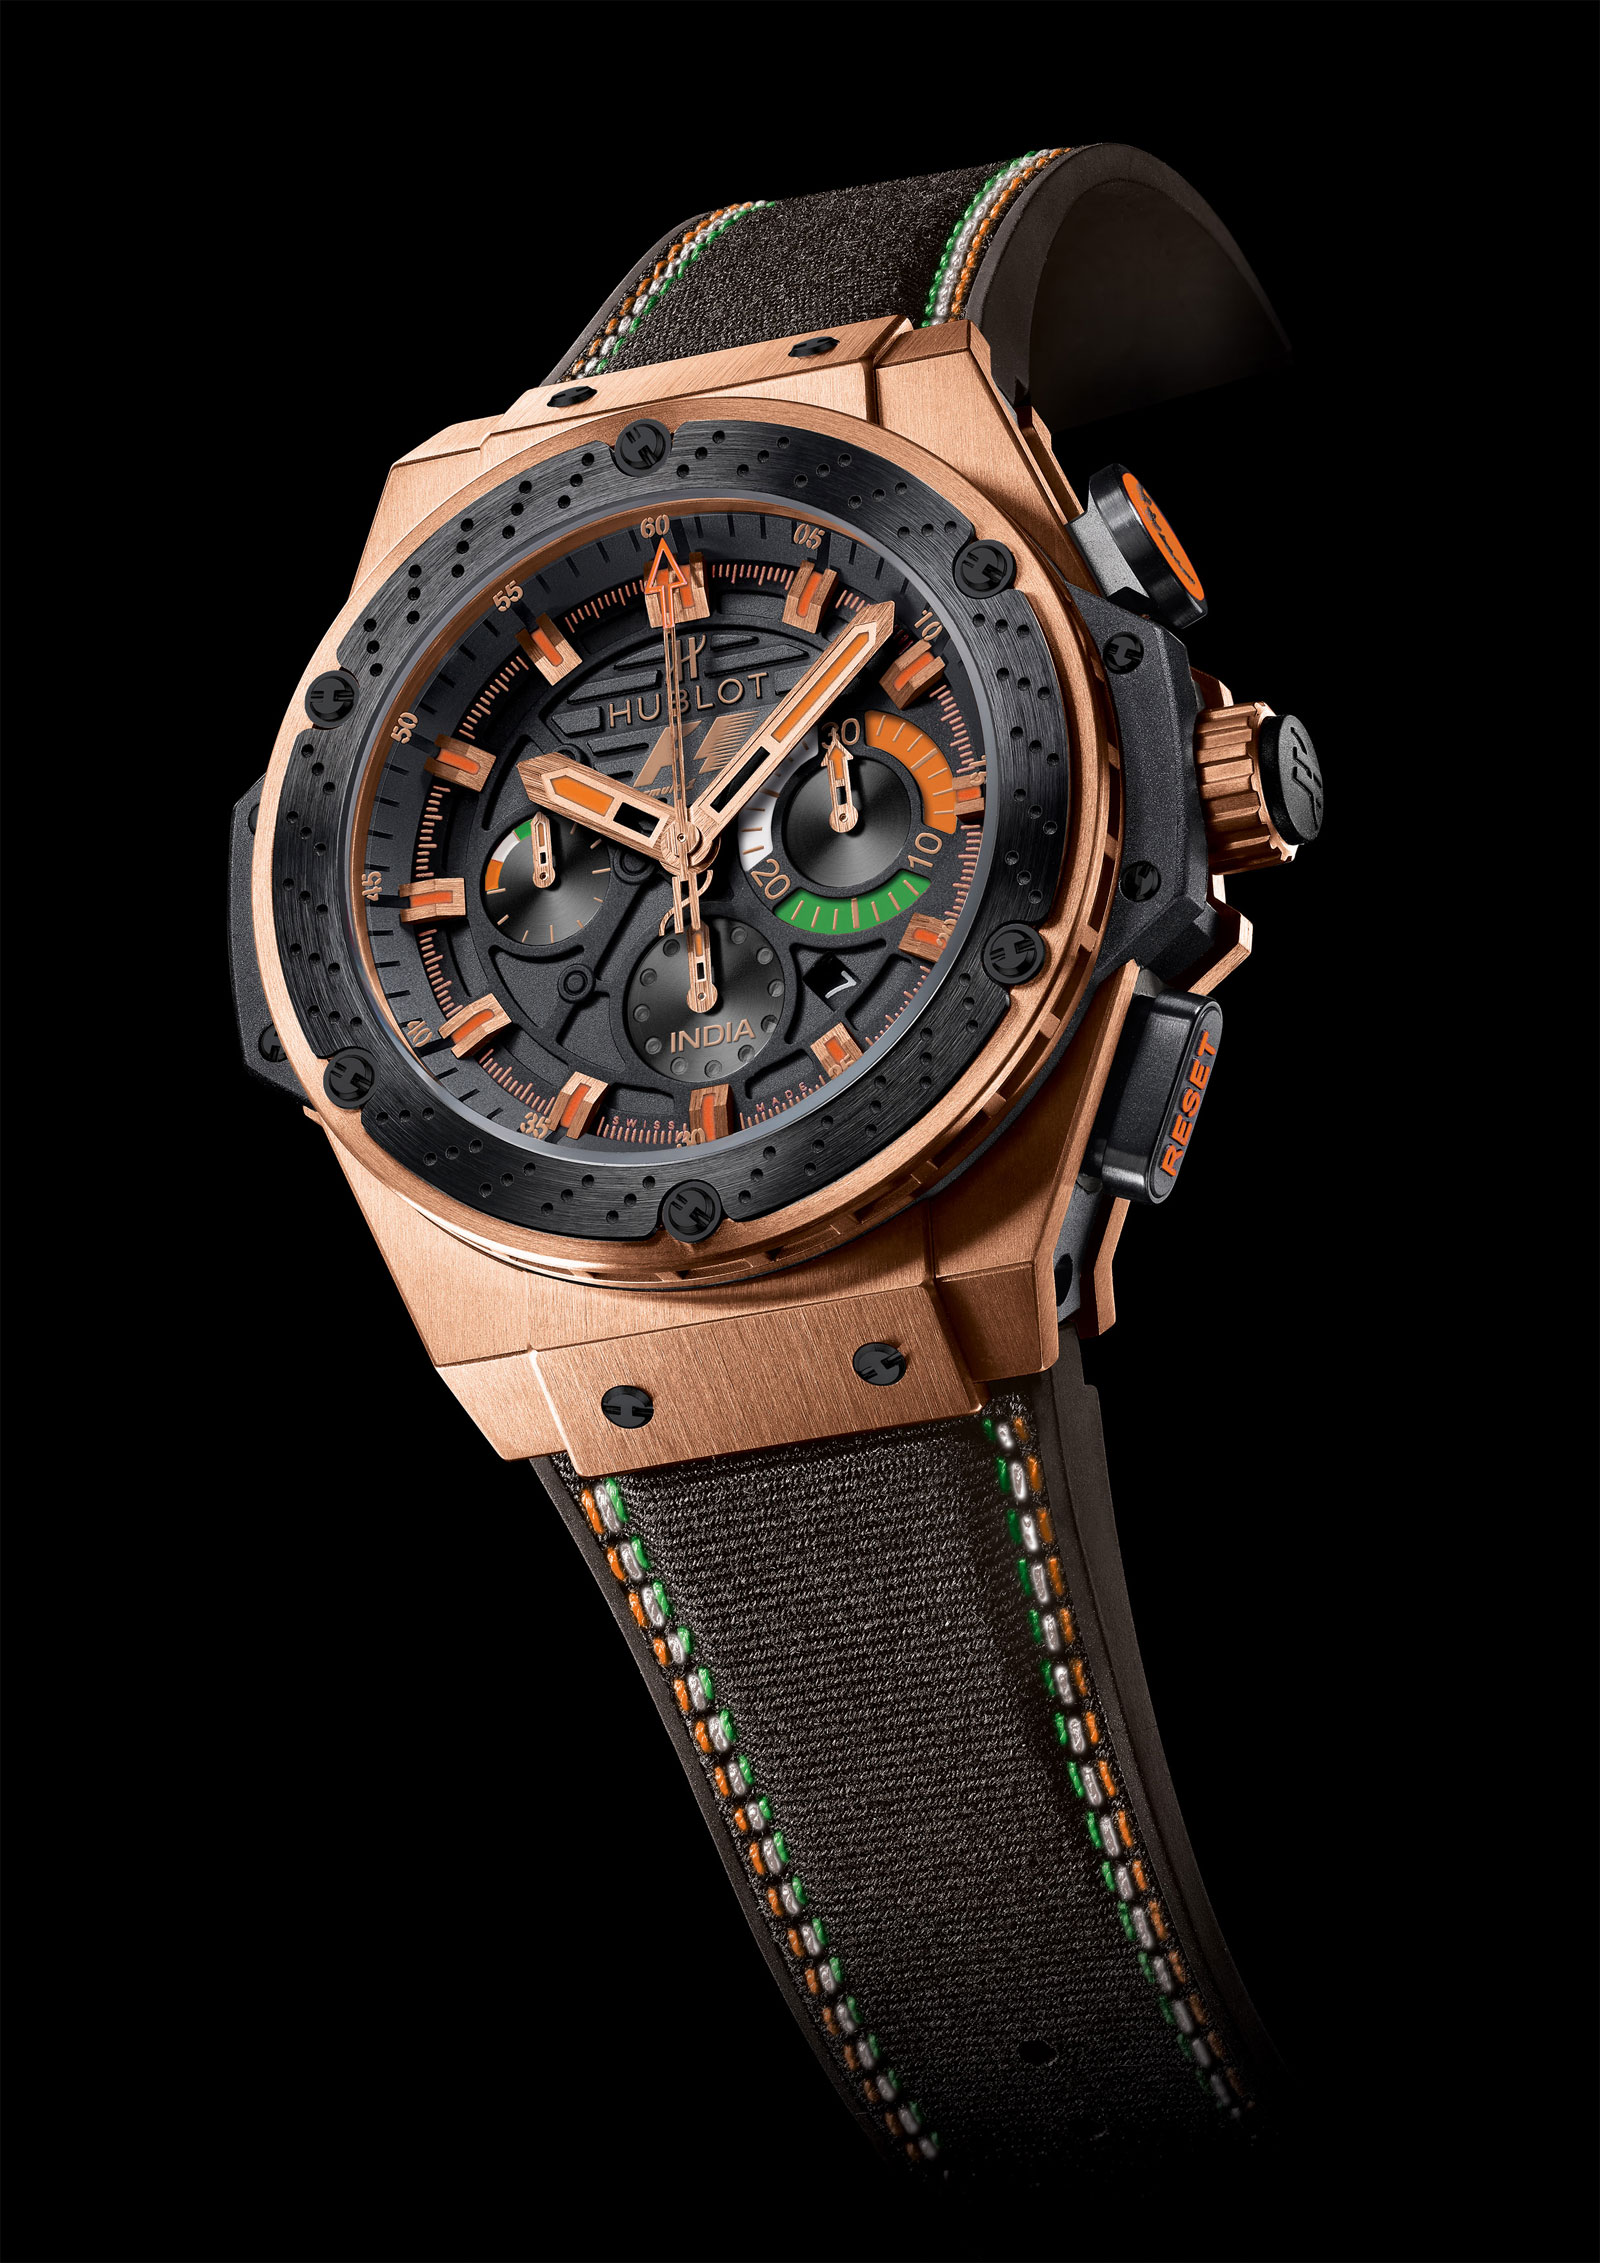 Hublot-F1-King-Power-India-1